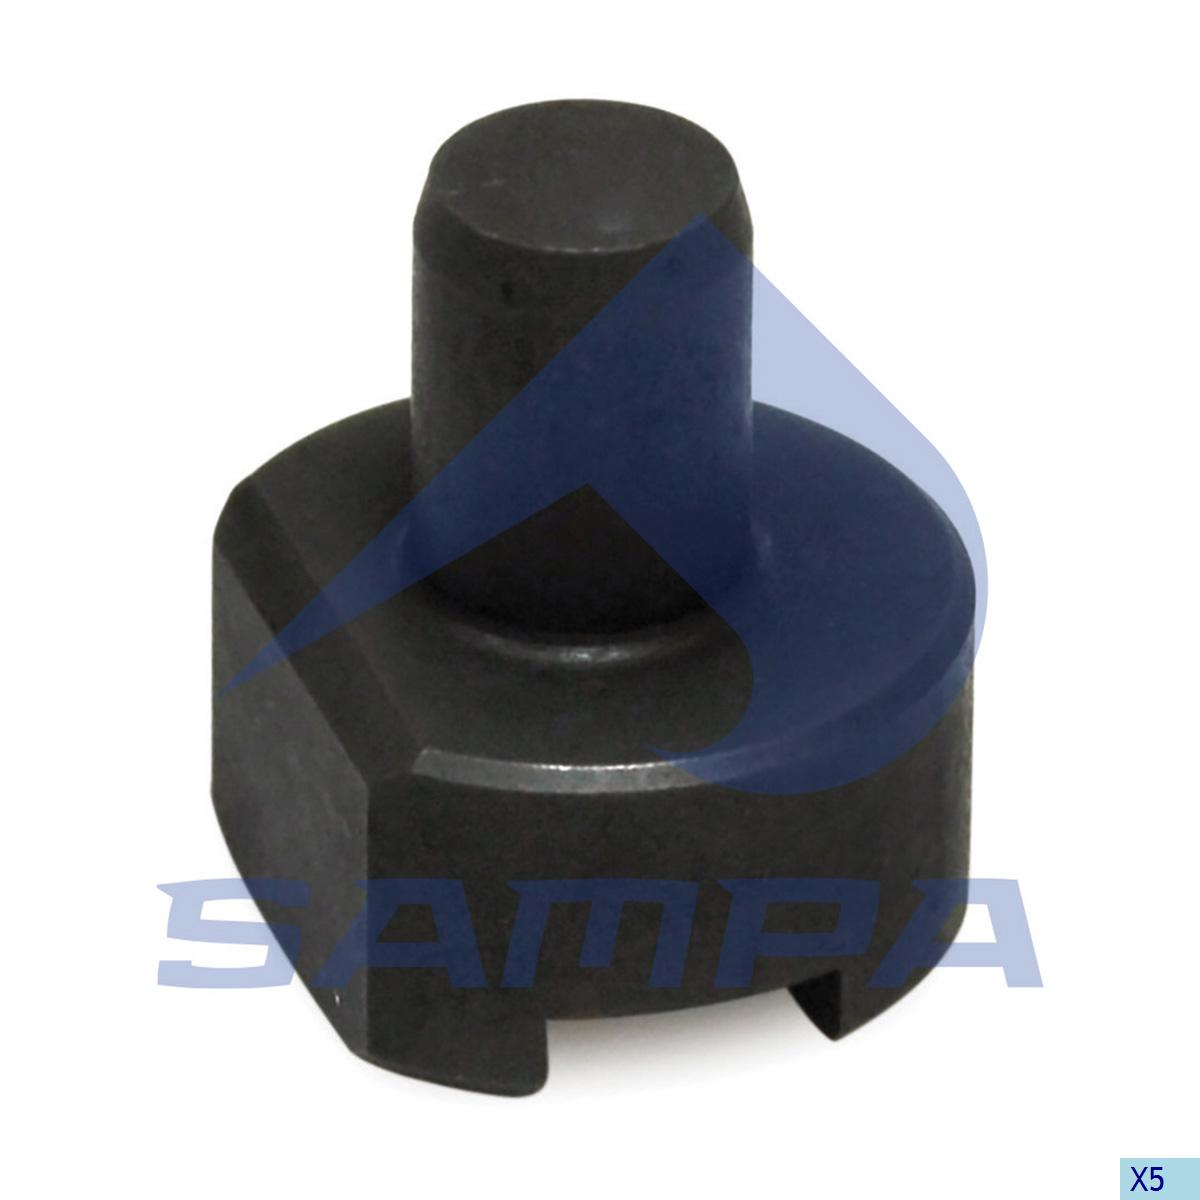 Adjuster Plunger, Brake Adjuster, Ror-Meritor, Brake